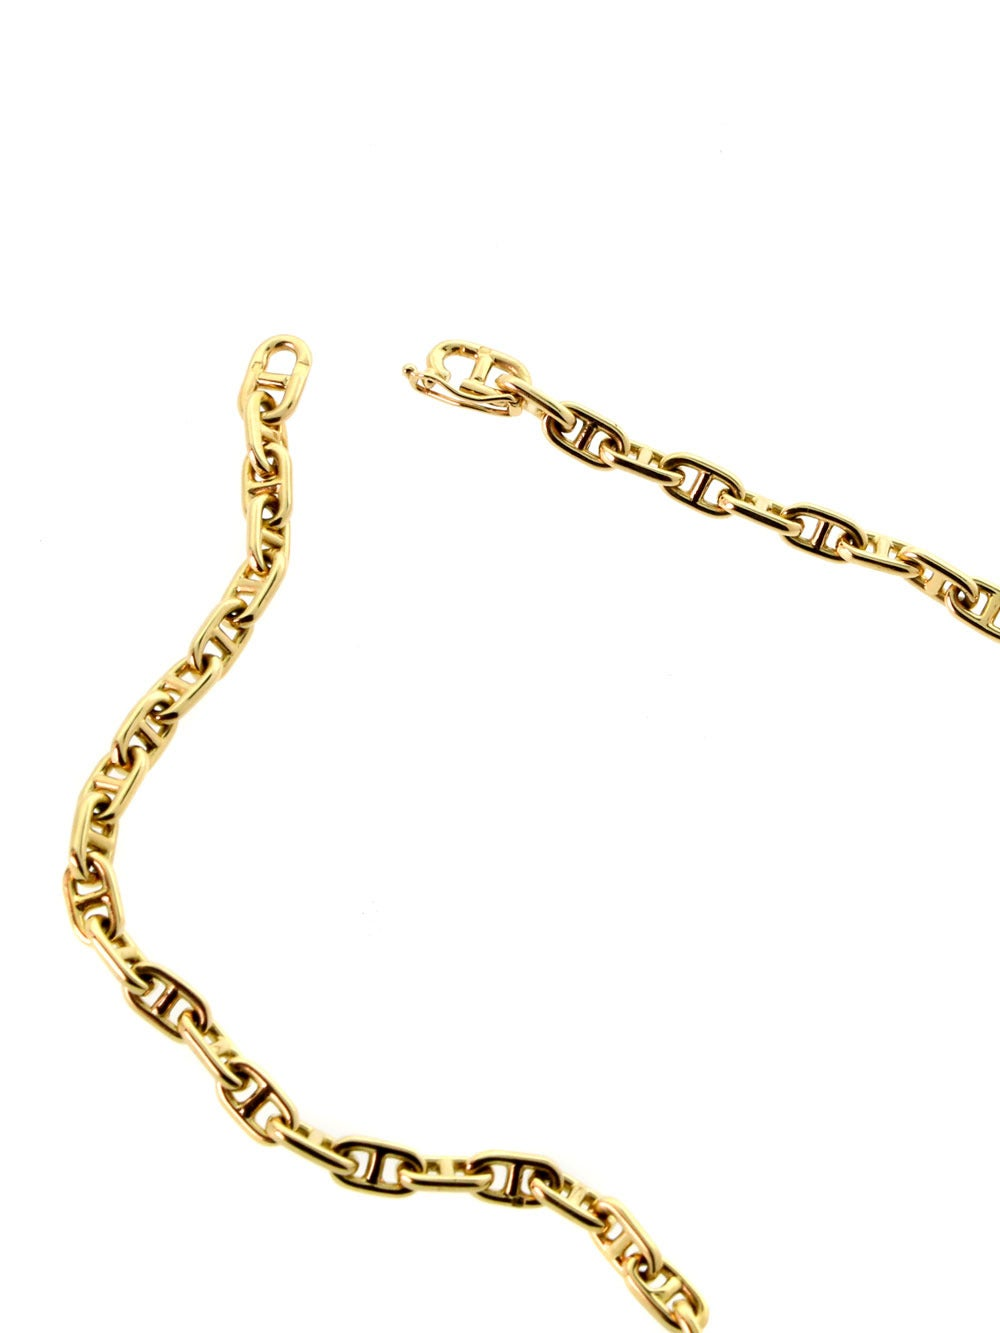 Hermes Gold Choker Necklace At 1stdibs